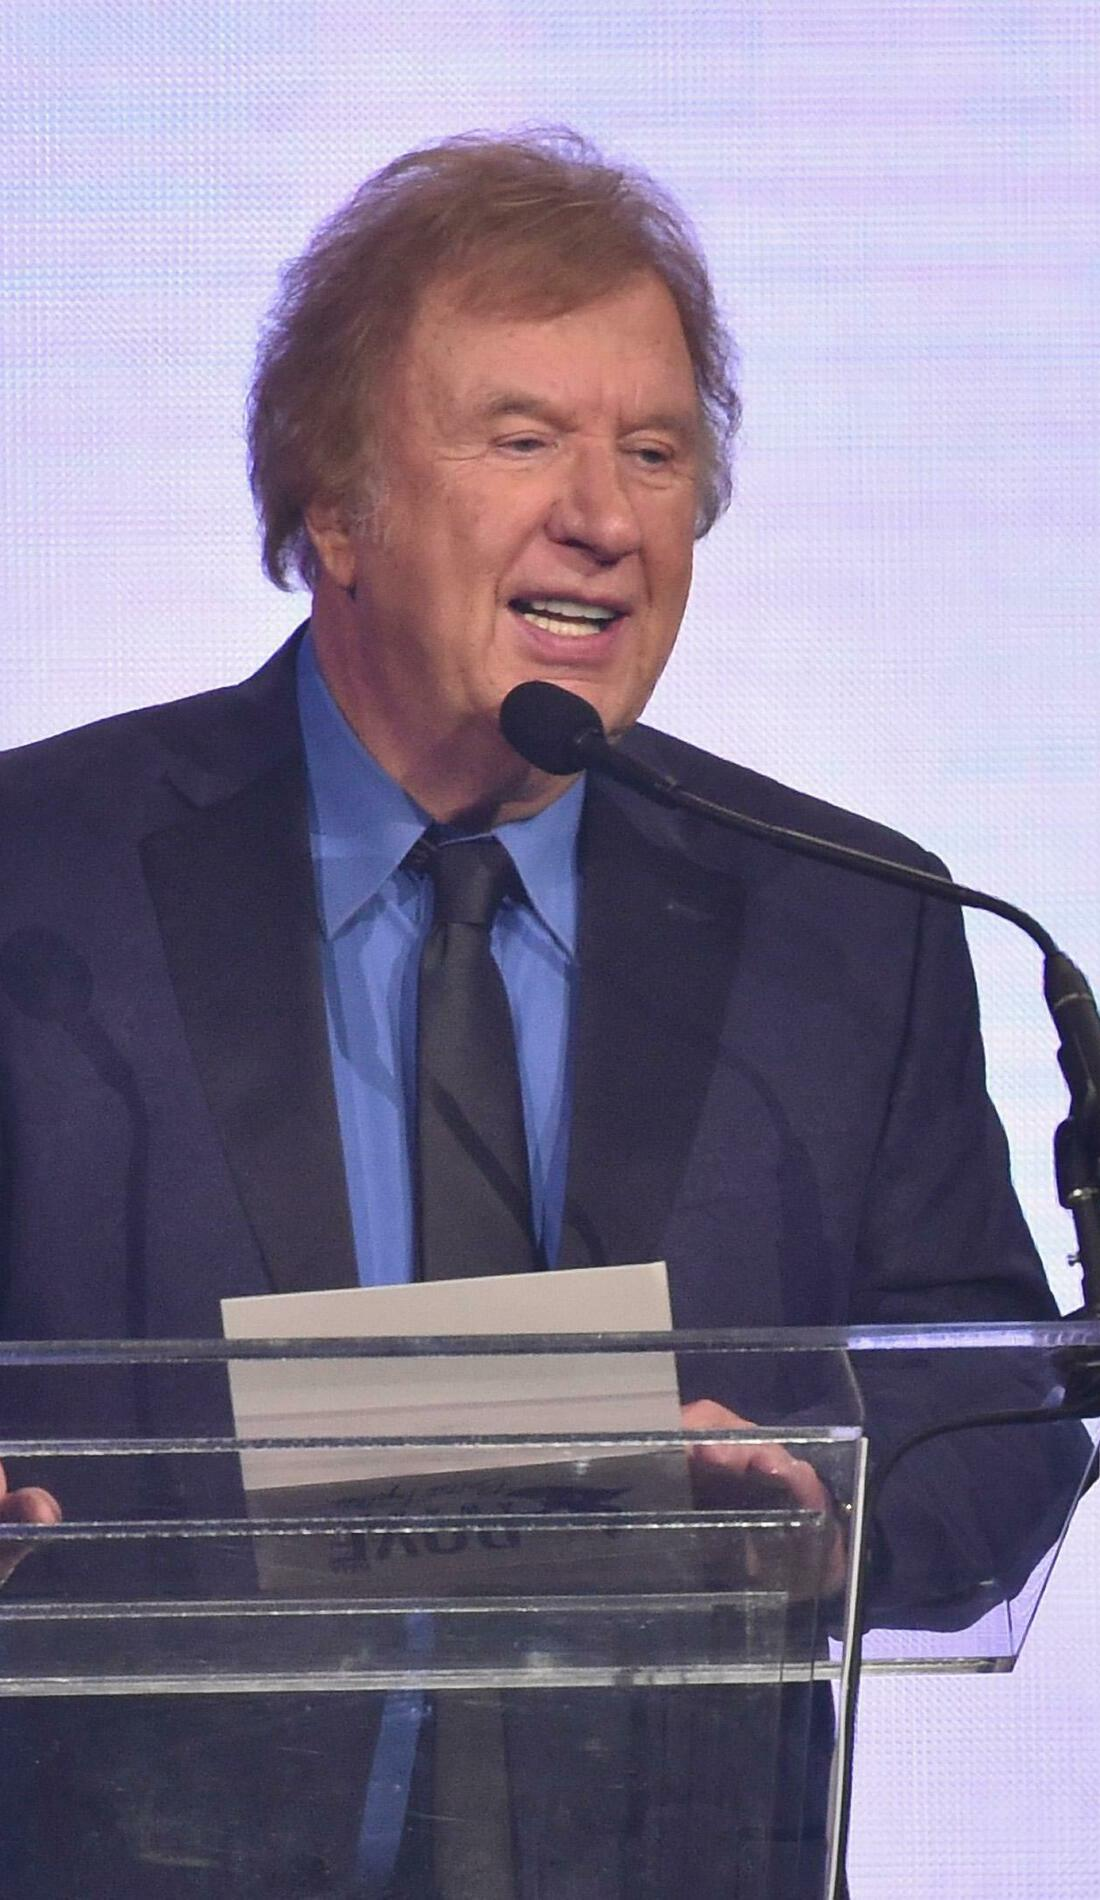 A Bill Gaither live event